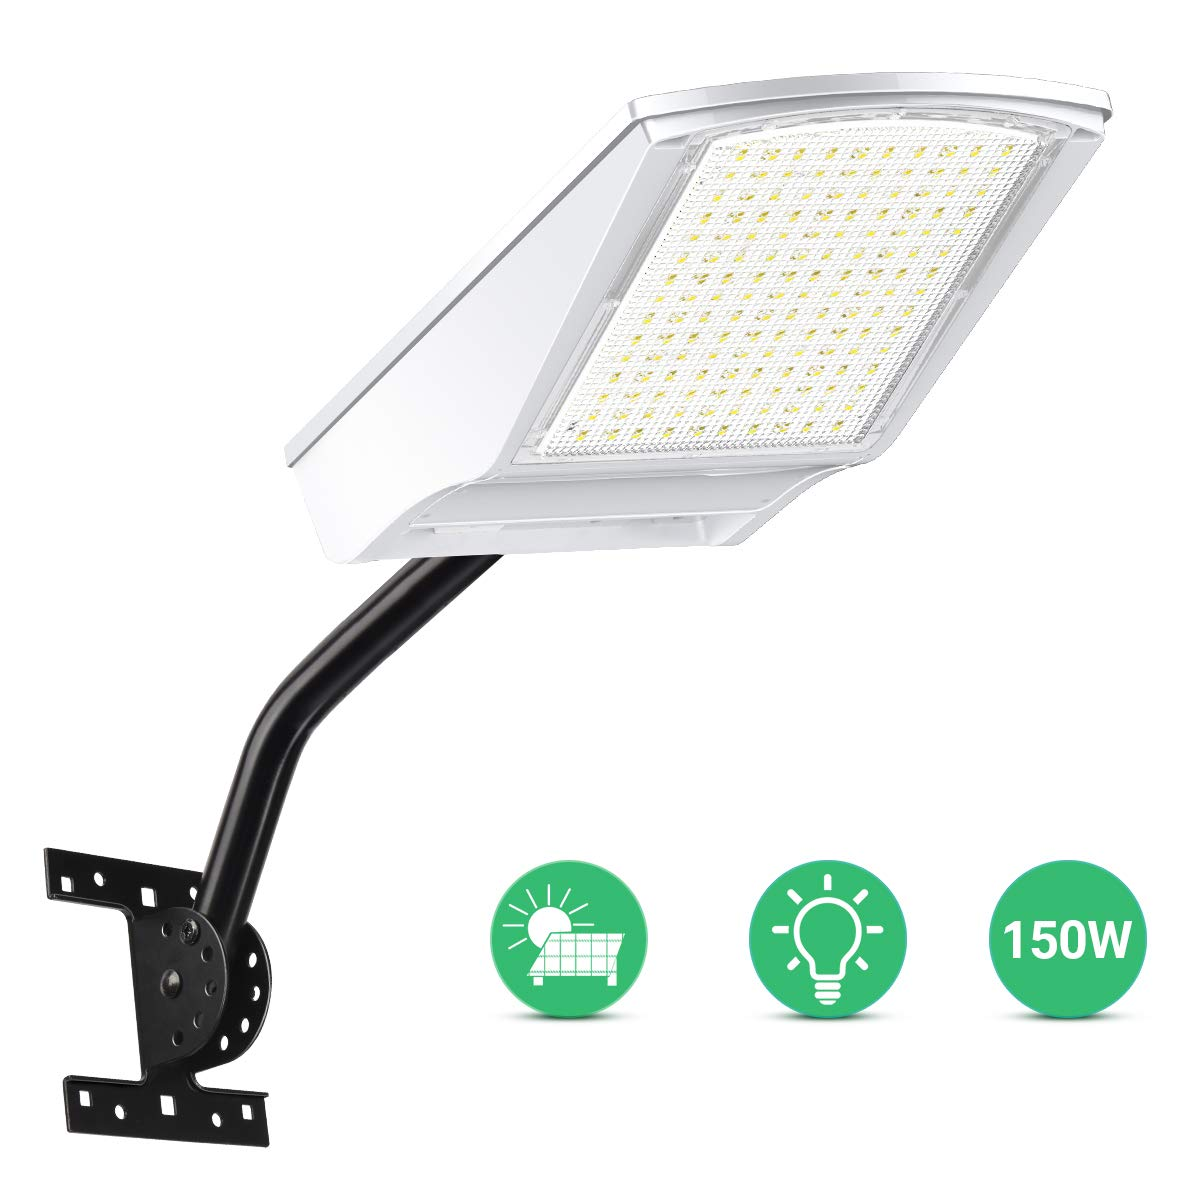 Solar Street Light,150W Motion Sensor Solar Light LED Flood Light All-in-one Design Solar Wall Light Lighting Waterproof for Garden, Outdoor, Yard,Pathway, Basketball Court,Garage 150 LED with Pole